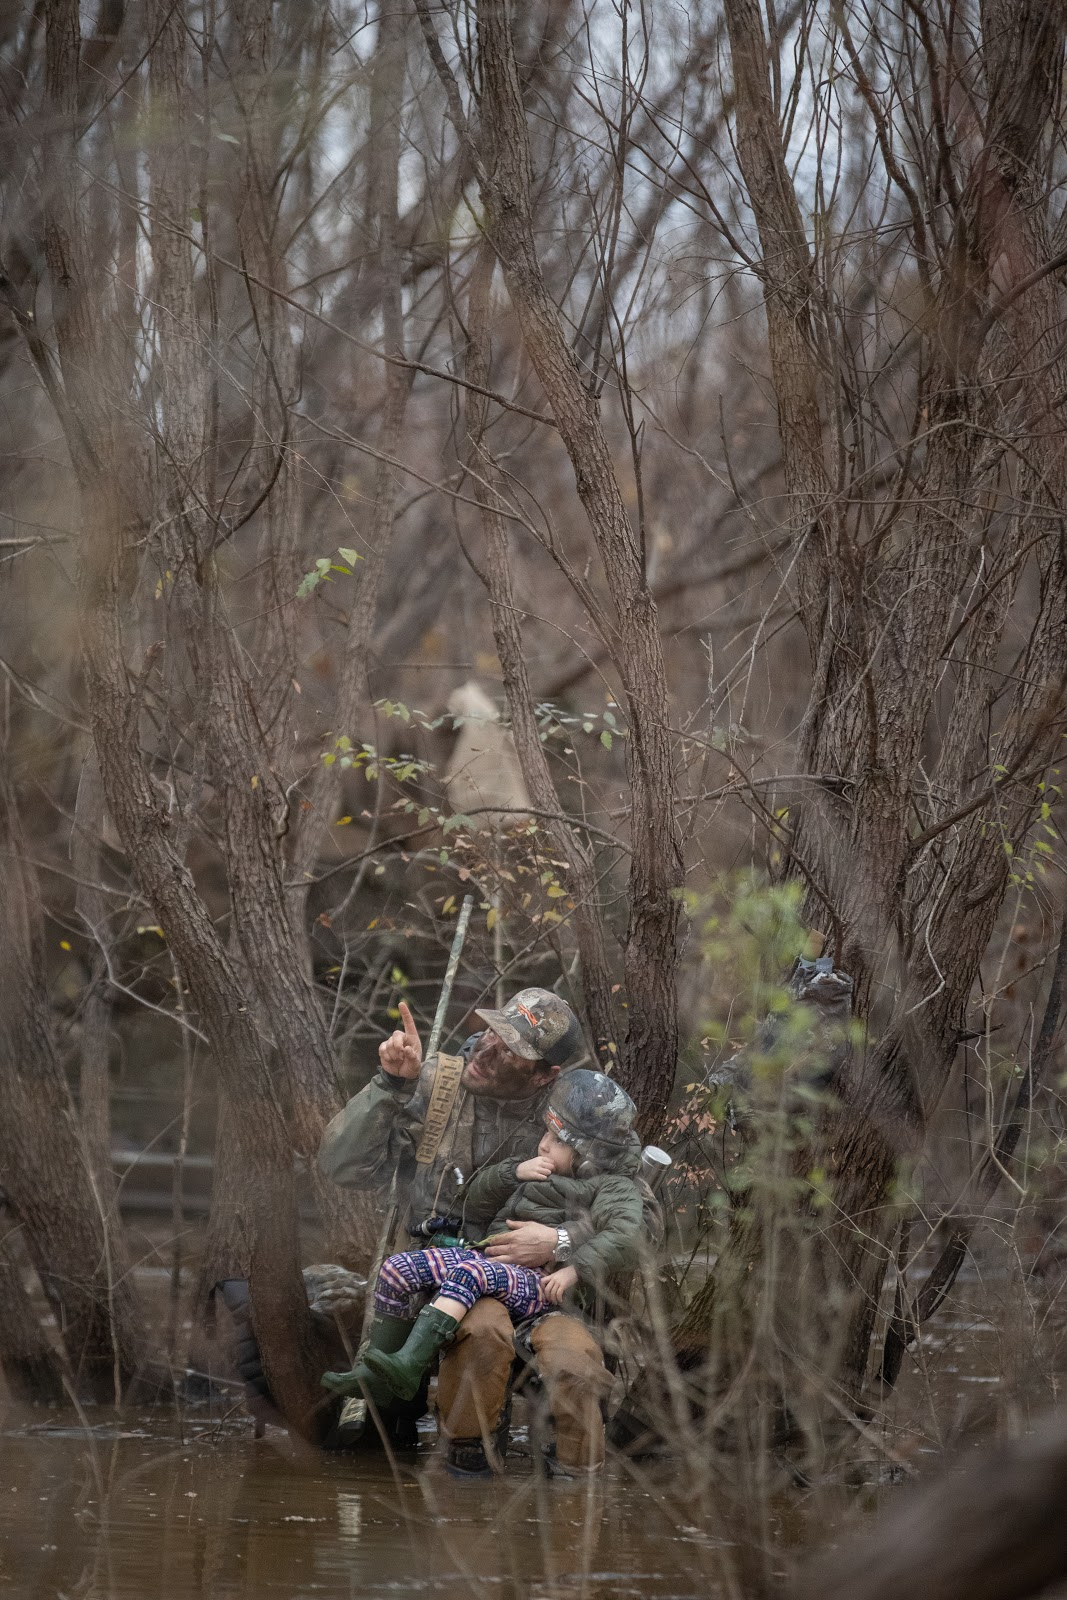 Father and daughter duck hunting in the timber.